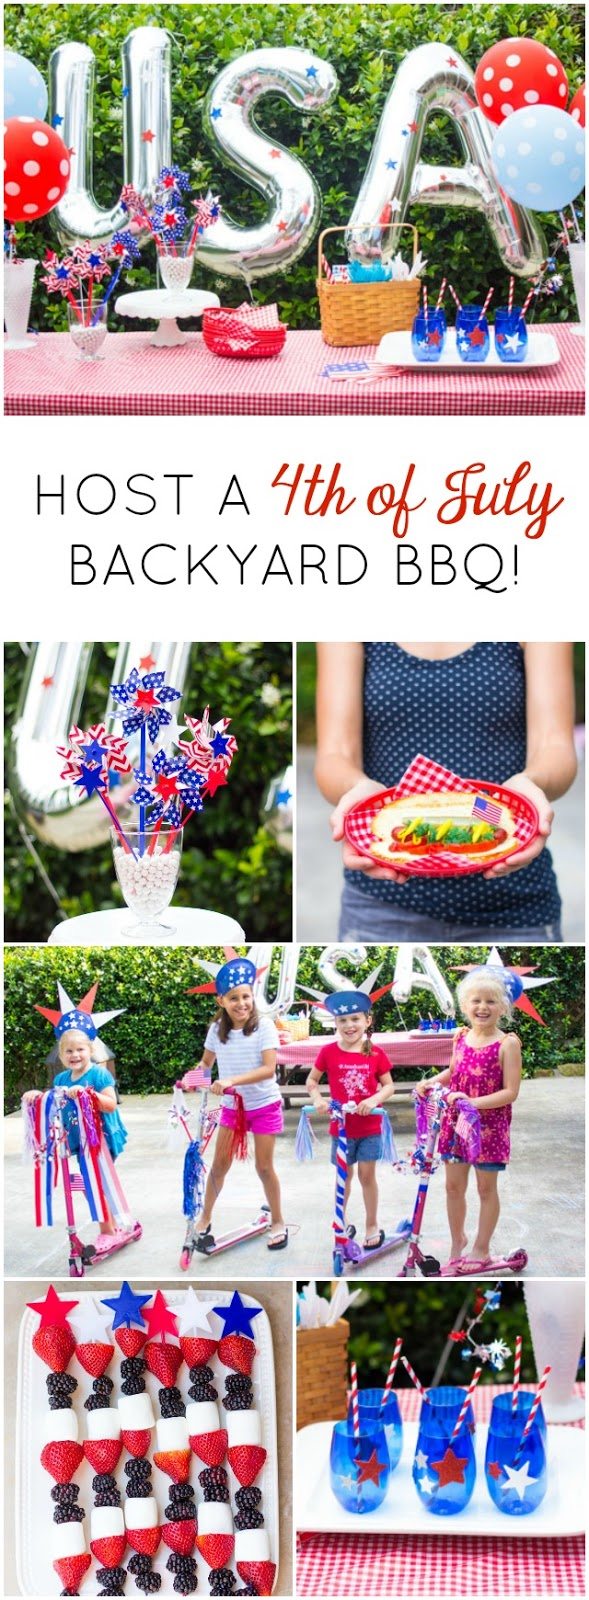 Host a 4th of July Party - 7 Simple Ideas to Try! - Design ...